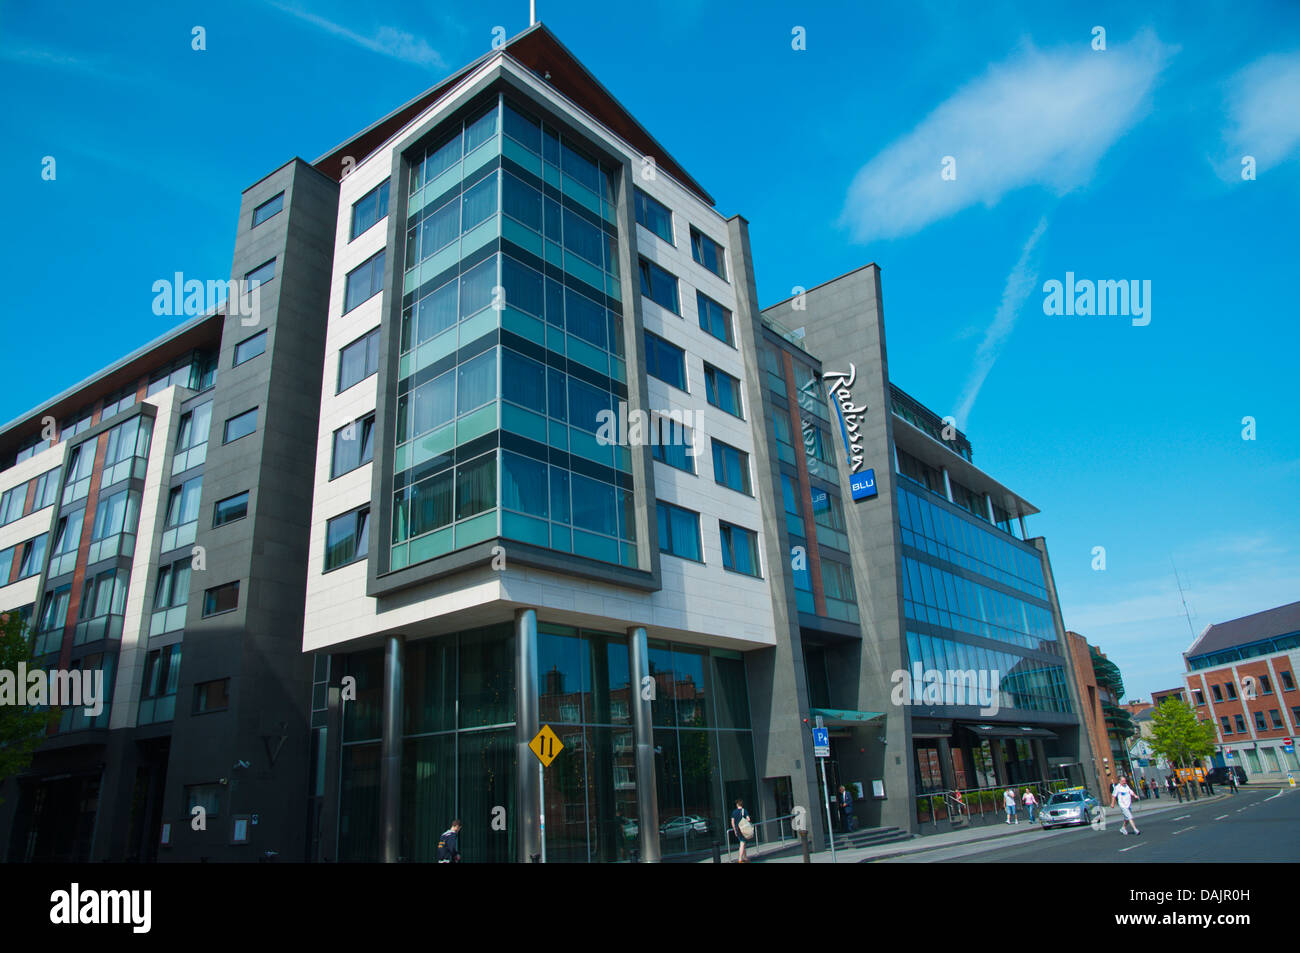 Radisson Blu hotel Medieval district central Dublin Ireland Europe - Stock Image